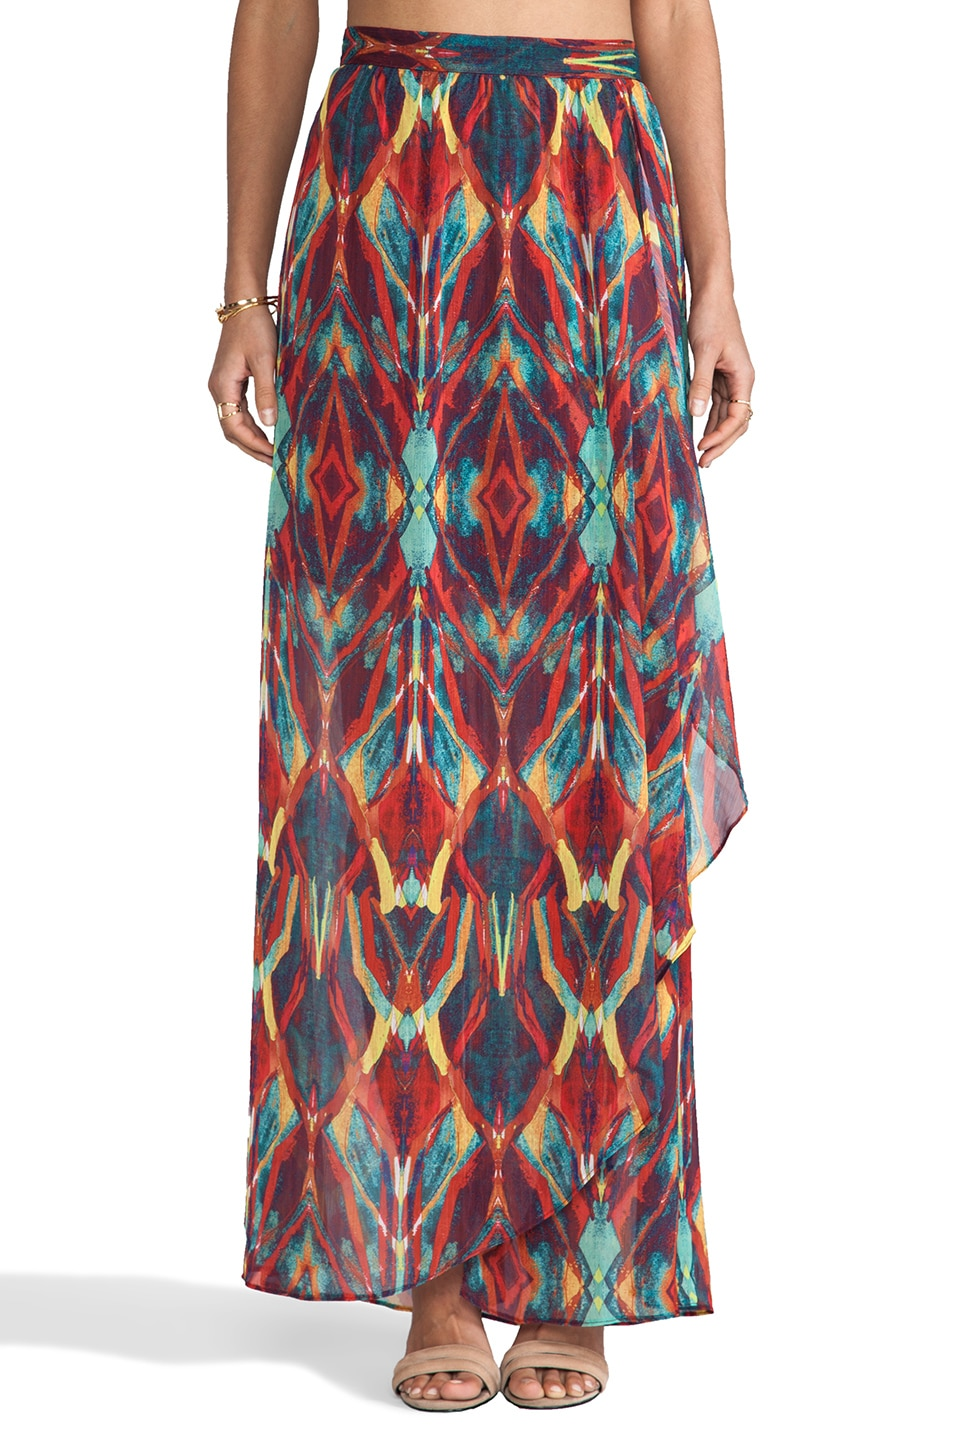 Alice + Olivia Miabella Wrap Slit Maxi Skirt in Tribal Diamond